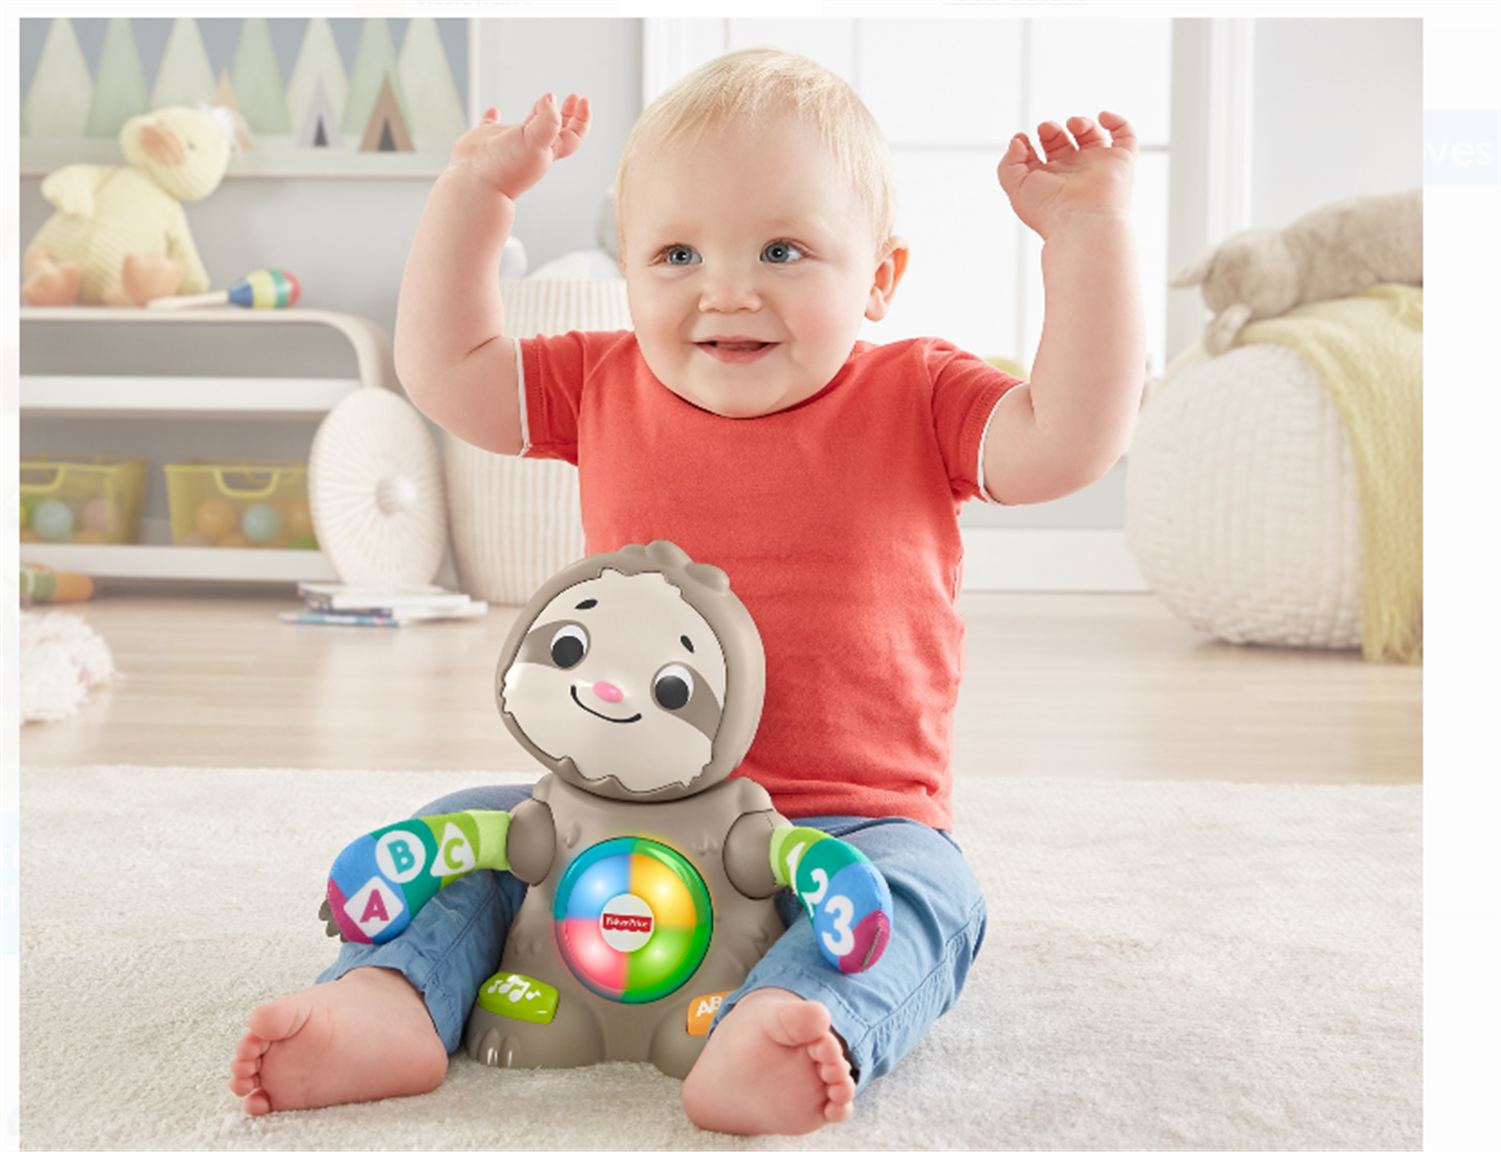 Walmart – Fisher-Price Linkimals Smooth Moves Sloth, with Music & Lights Only $22.49, Reg $29.82 + Free Store Pickup!